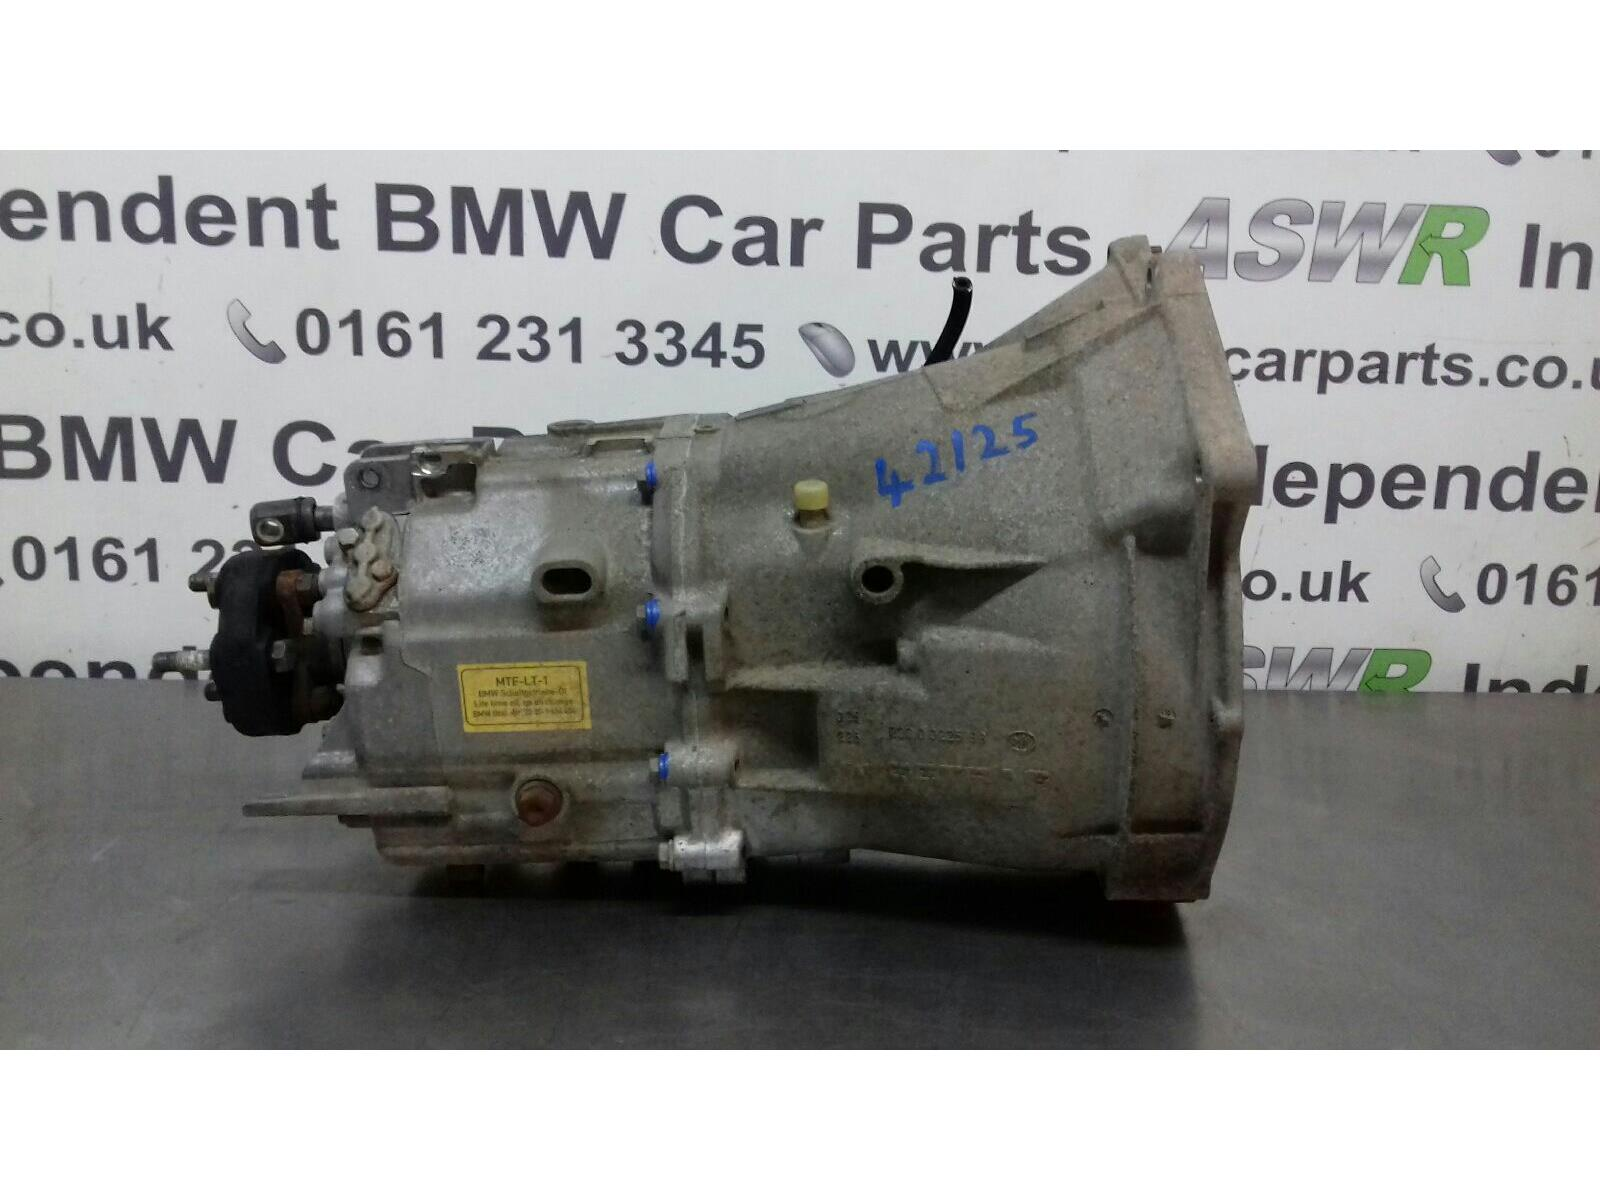 BMW E39 5 SERIES Manual Gearbox 23001434410 breaking for used and